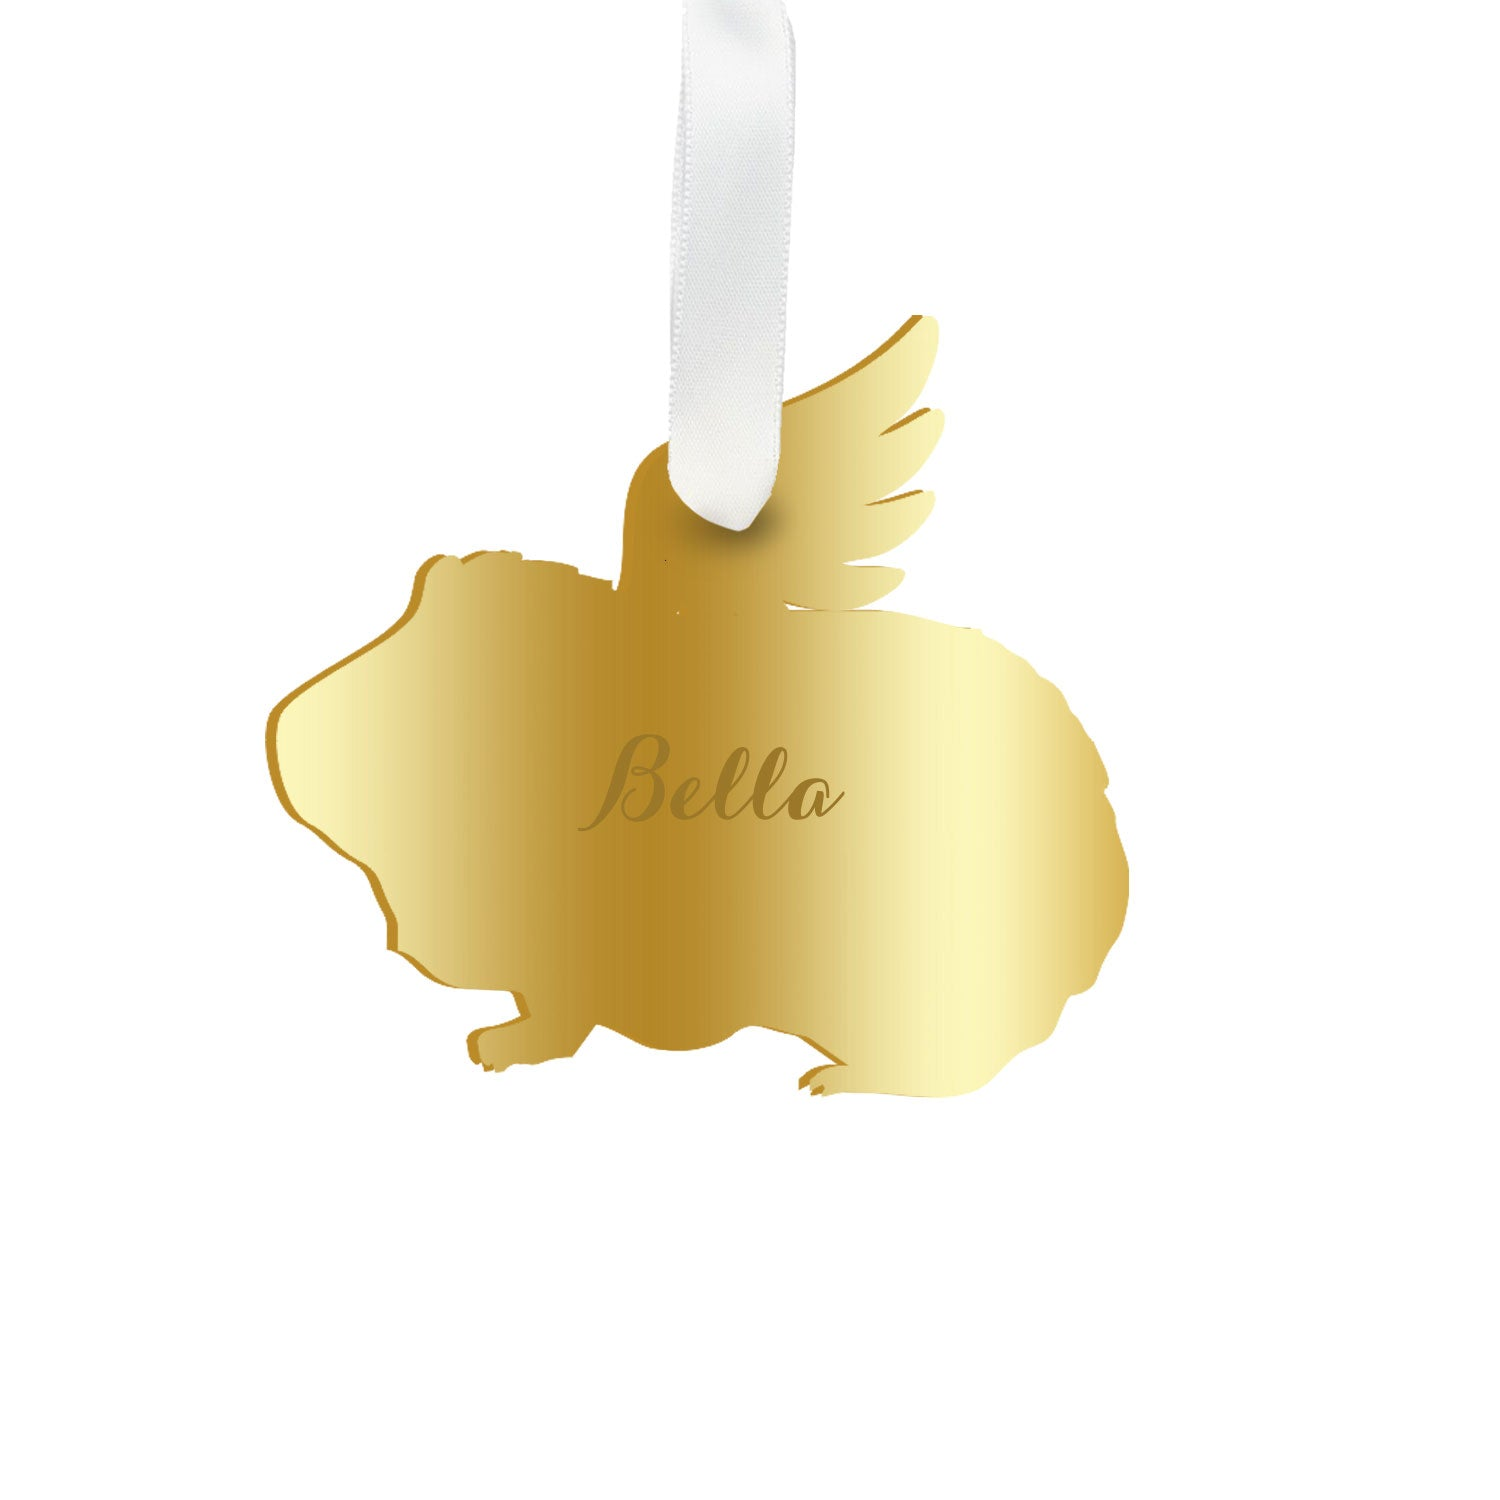 Moon and Lola - Personalized Angel Guinea Pig Ornament with wings in gold